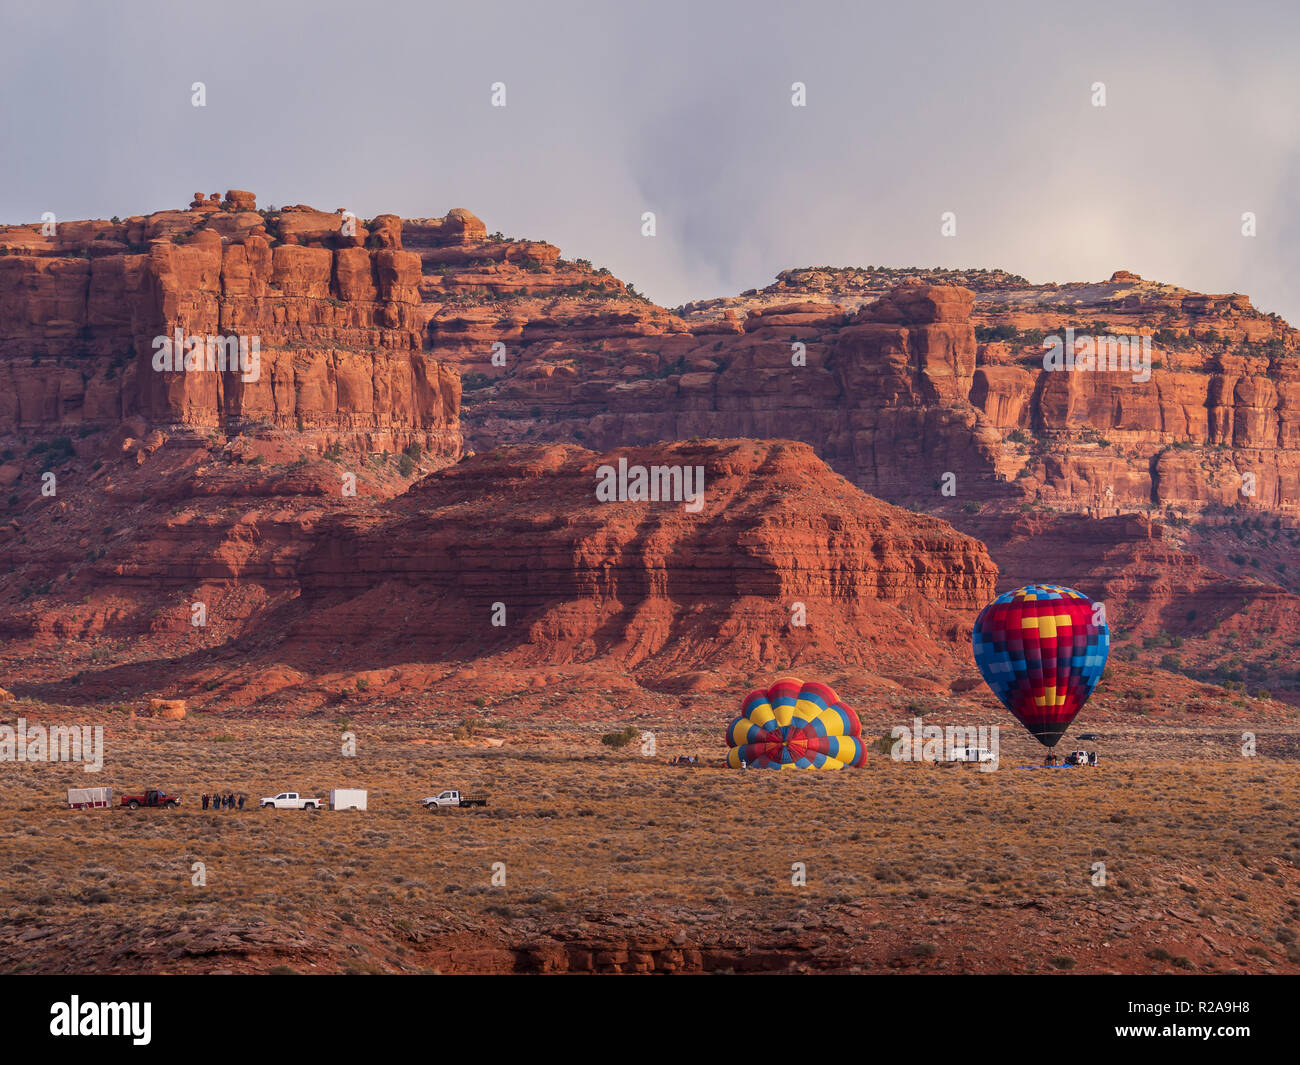 Balloons launching in the Valley of the Gods near Bluff, Utah. - Stock Image